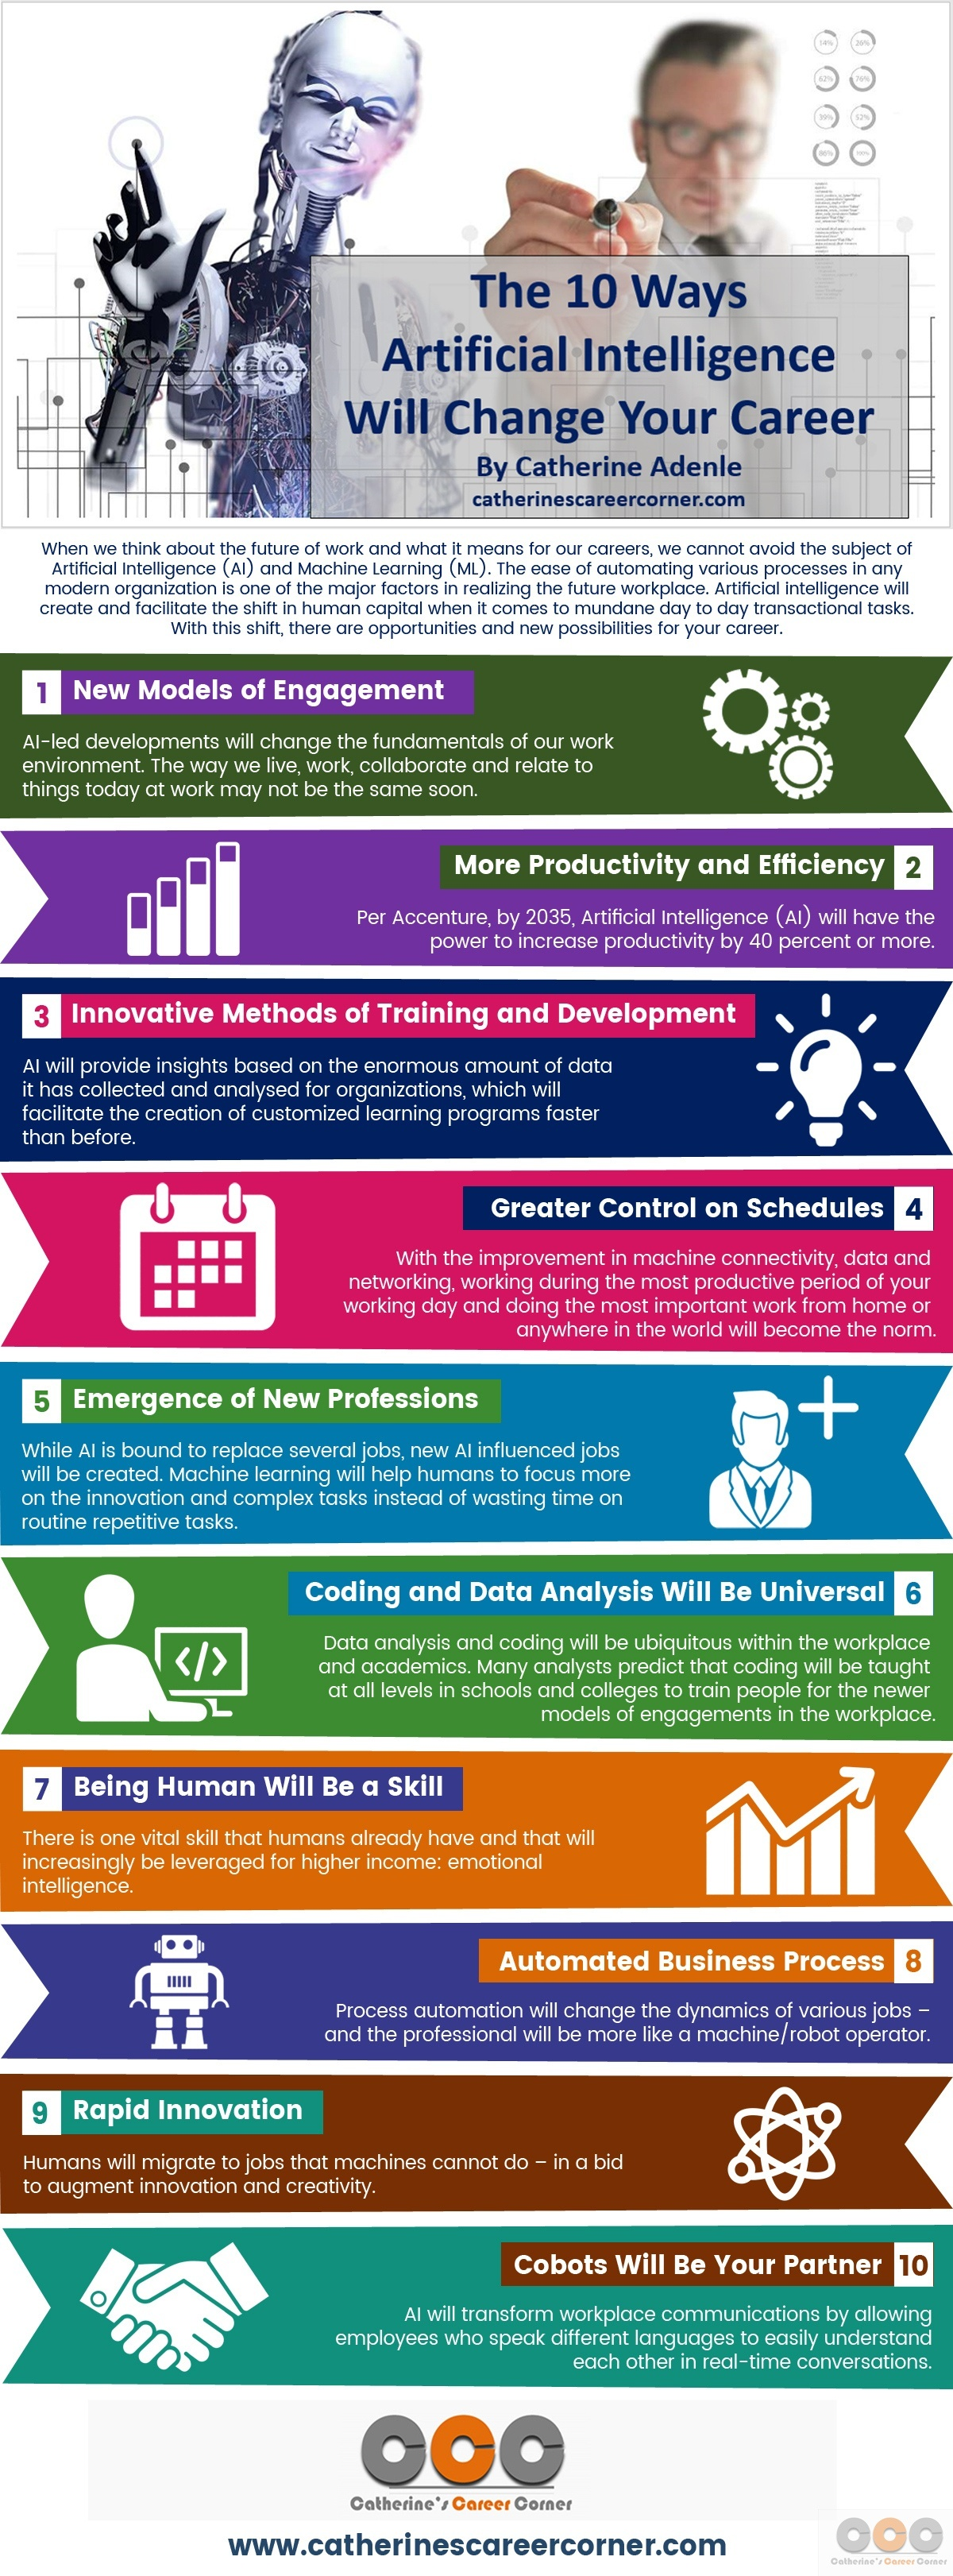 10 Ways Artificial Intelligence will Change your Career (Infographic)